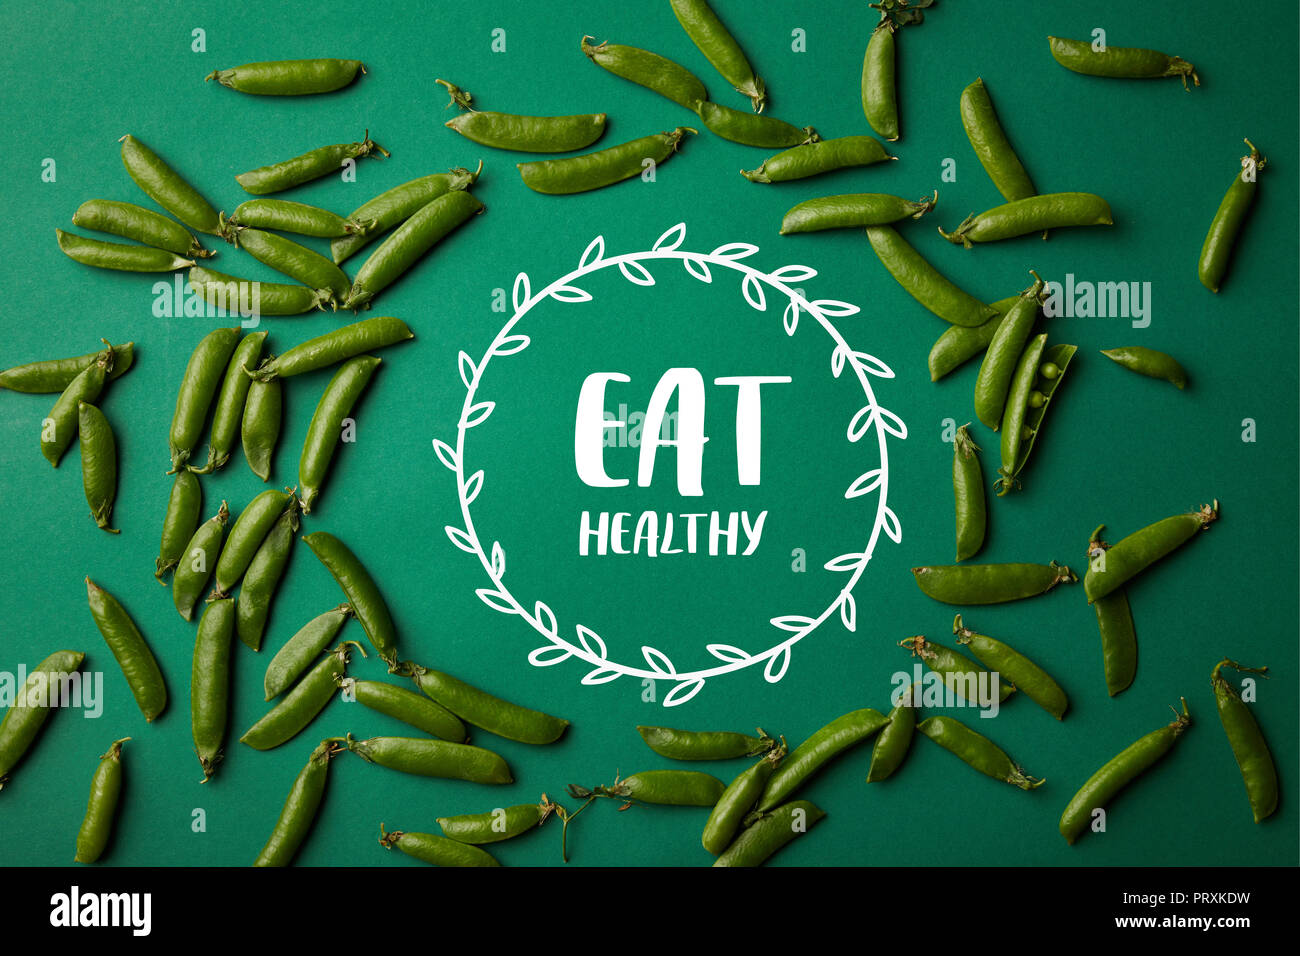 top view of round frame made of pea pods on green surface with 'eat healthy' lettering - Stock Image